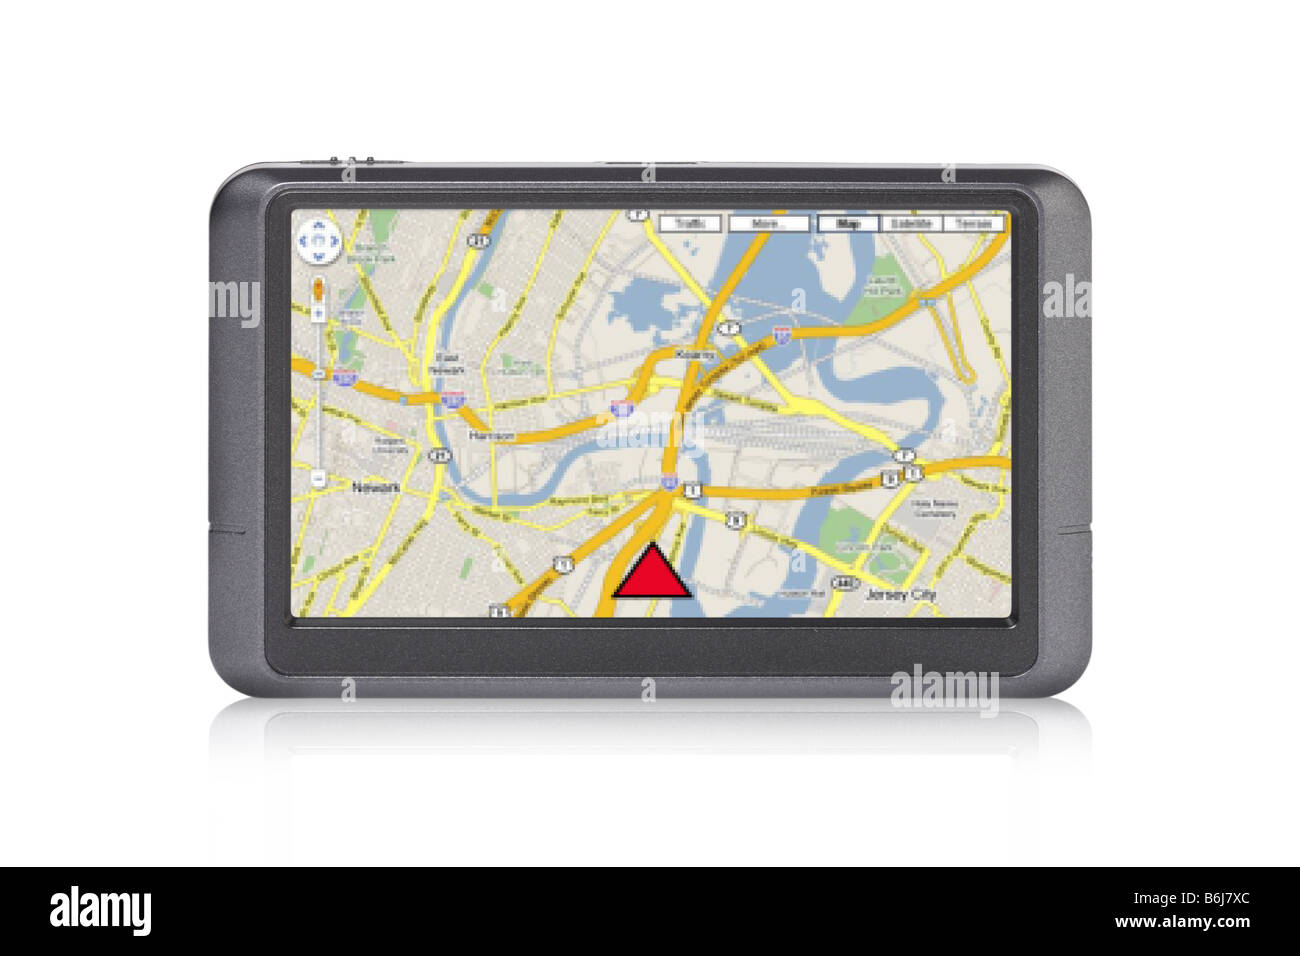 Portable GPS device with map on screen cutout on white background - Stock Image